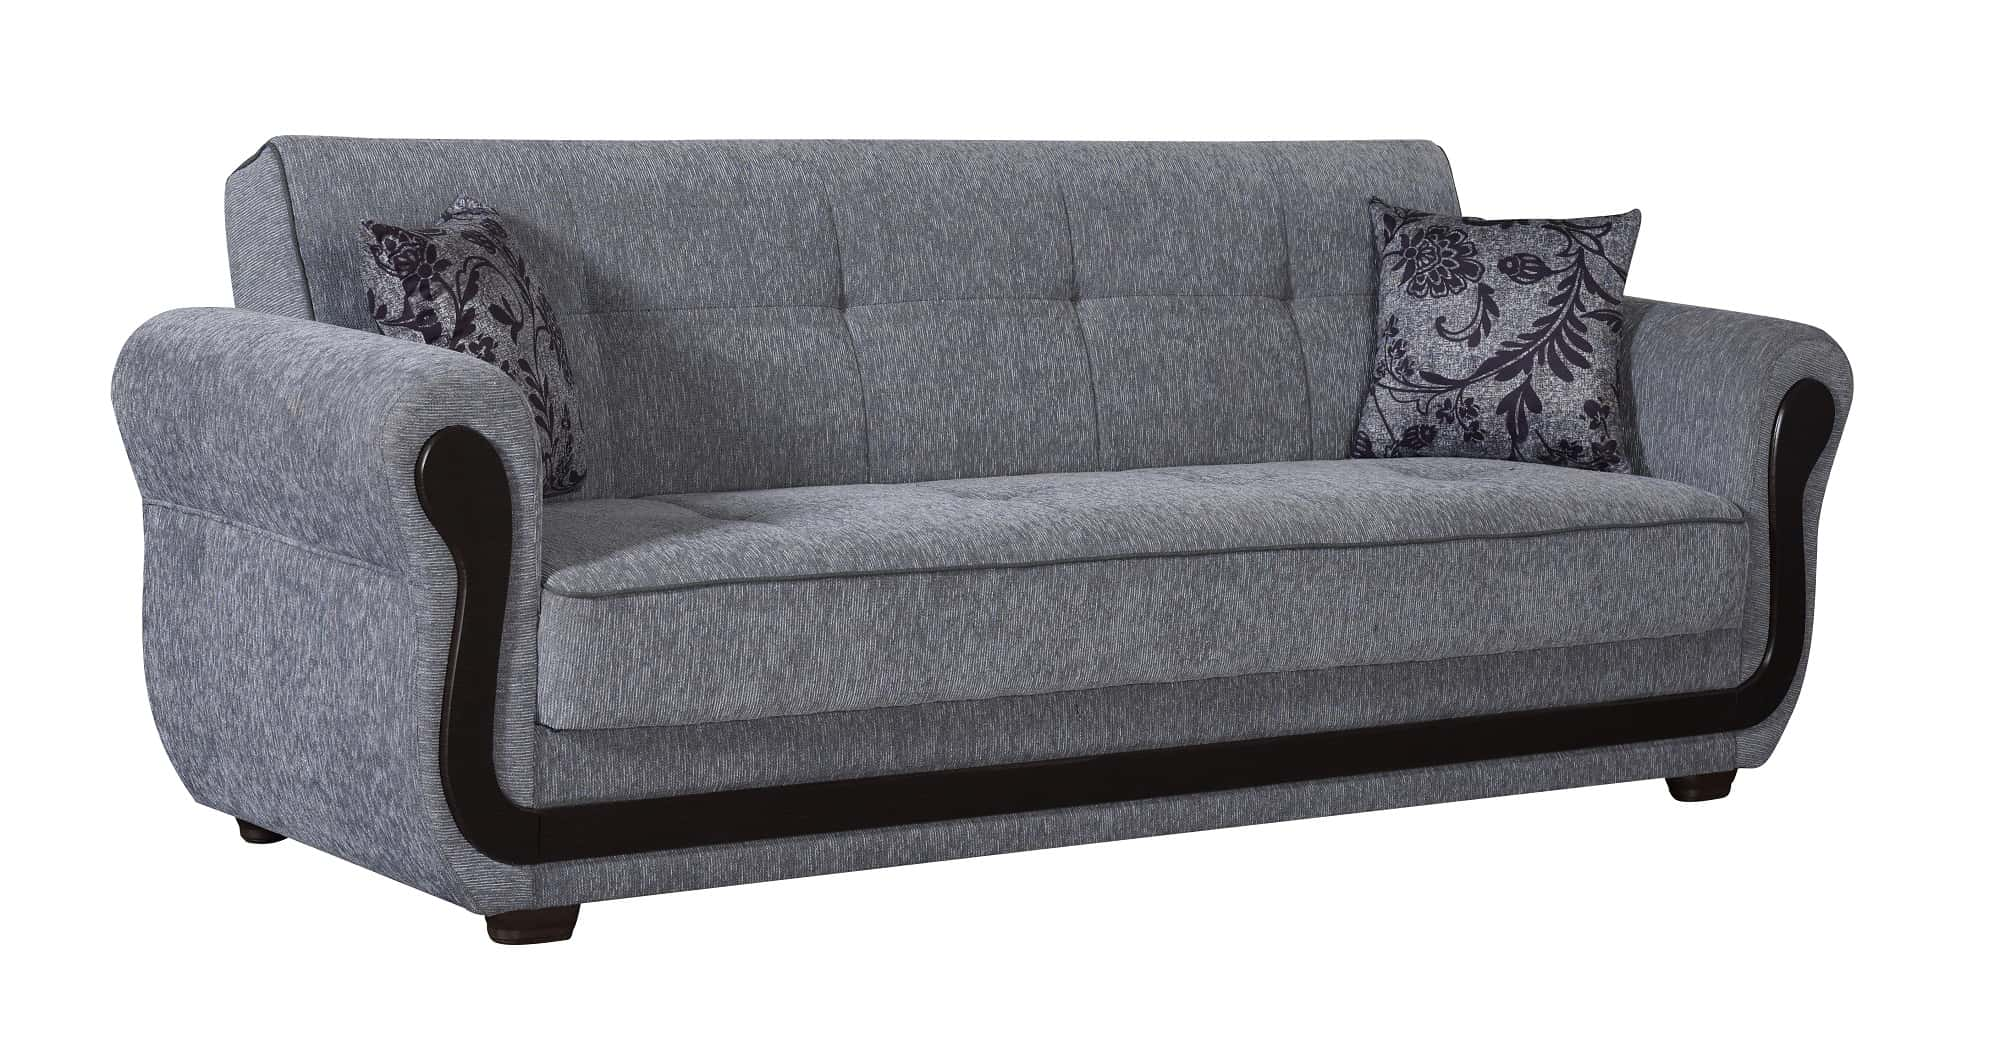 Picture of: Surf Ave Gray Fabric Sofa Bed By Empire Furniture Usa